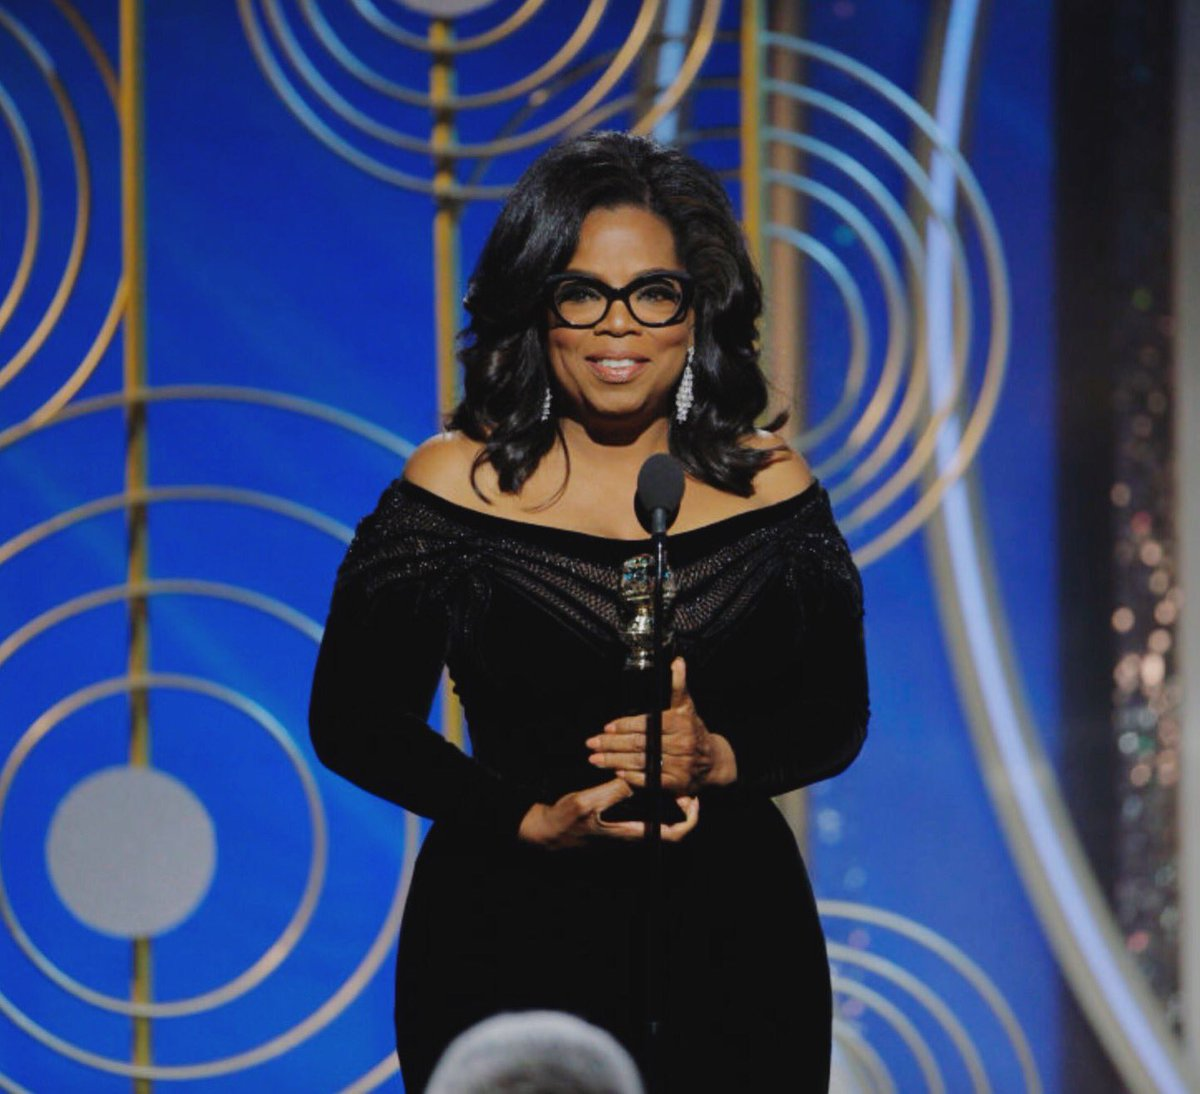 I'm with her! #Oprah2020 #TimesUp https:...